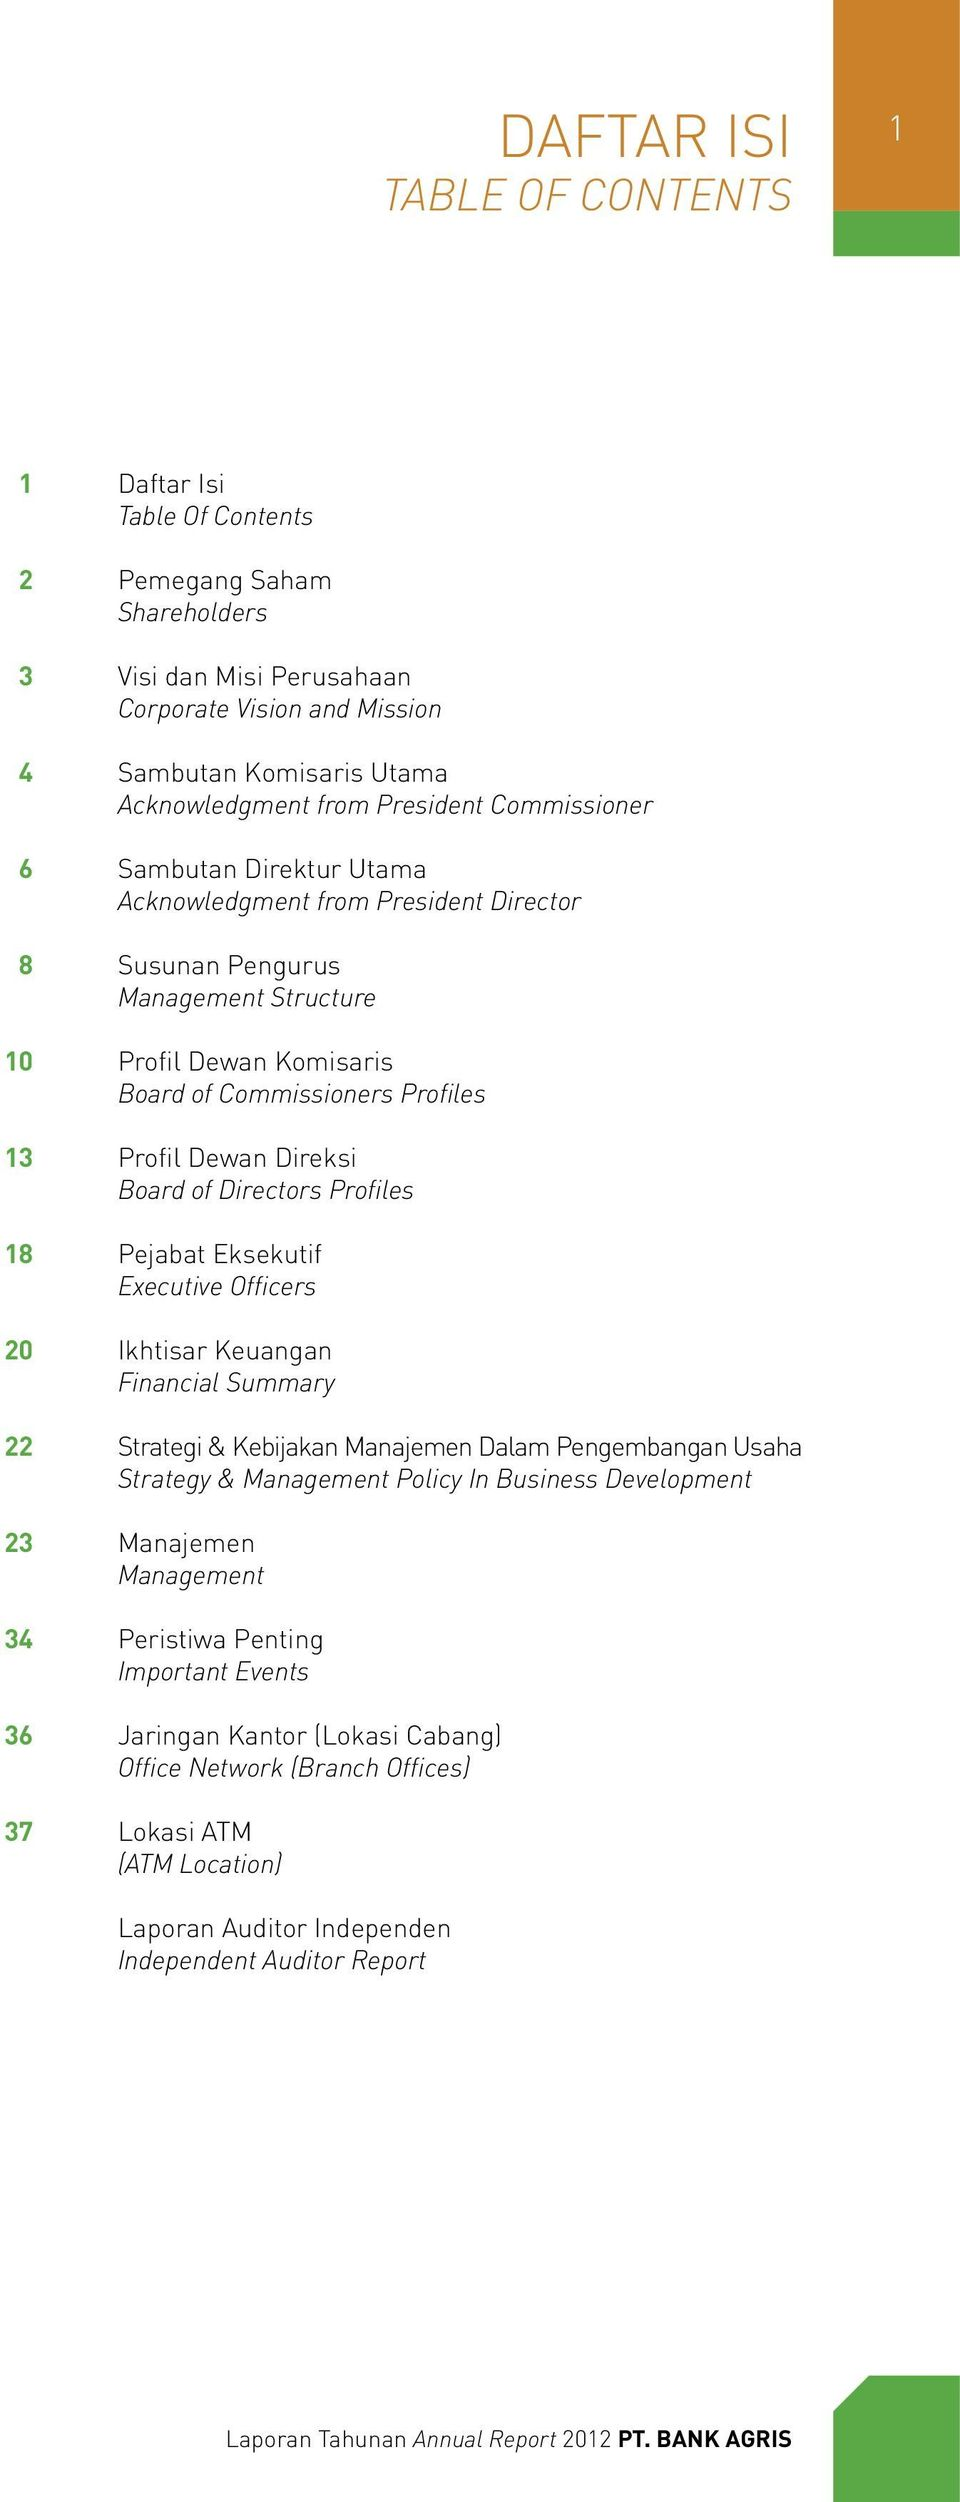 Profiles Profil Dewan Direksi Board of Directors Profiles Pejabat Eksekutif Executive Officers Ikhtisar Keuangan Financial Summary Strategi & Kebijakan Manajemen Dalam Pengembangan Usaha Strategy &